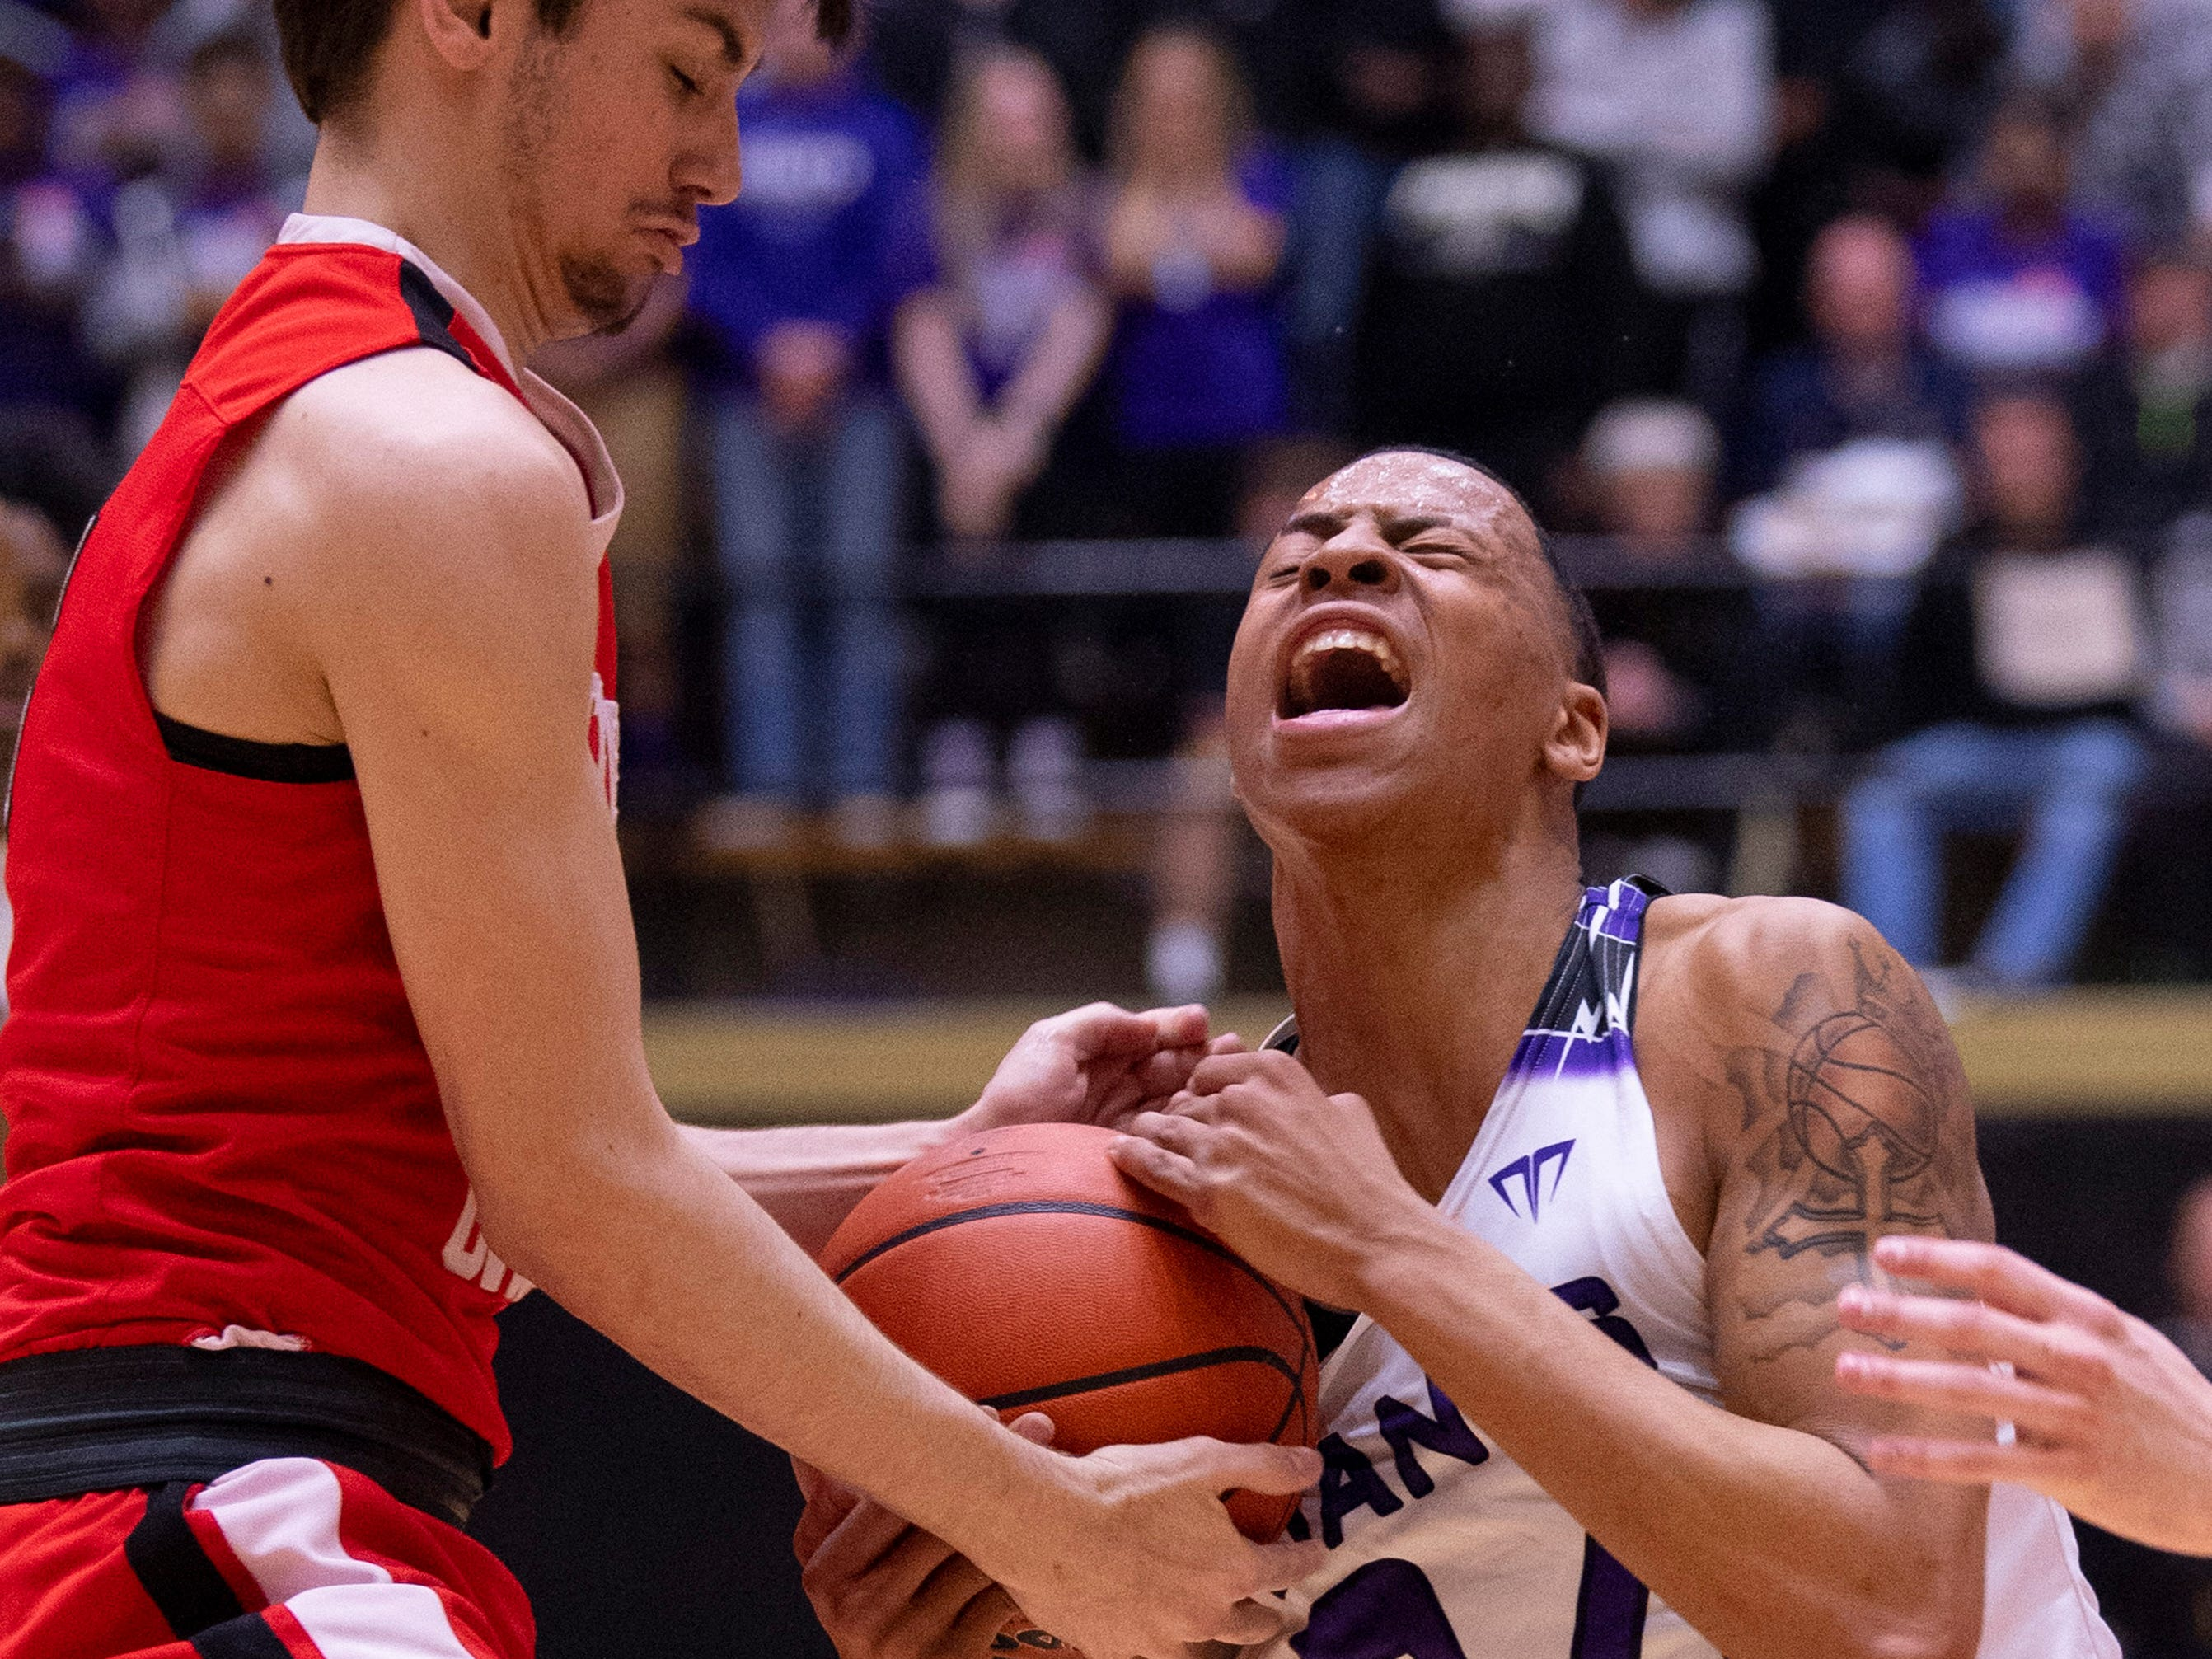 Ben Davis's Jalen Windham (24) is pressured by Center Grove's Ben Greller (3) during the 4A Boys Indiana Semi-State Basketball Tournament at the Hatchet House in Washington, Ind., Saturday afternoon.